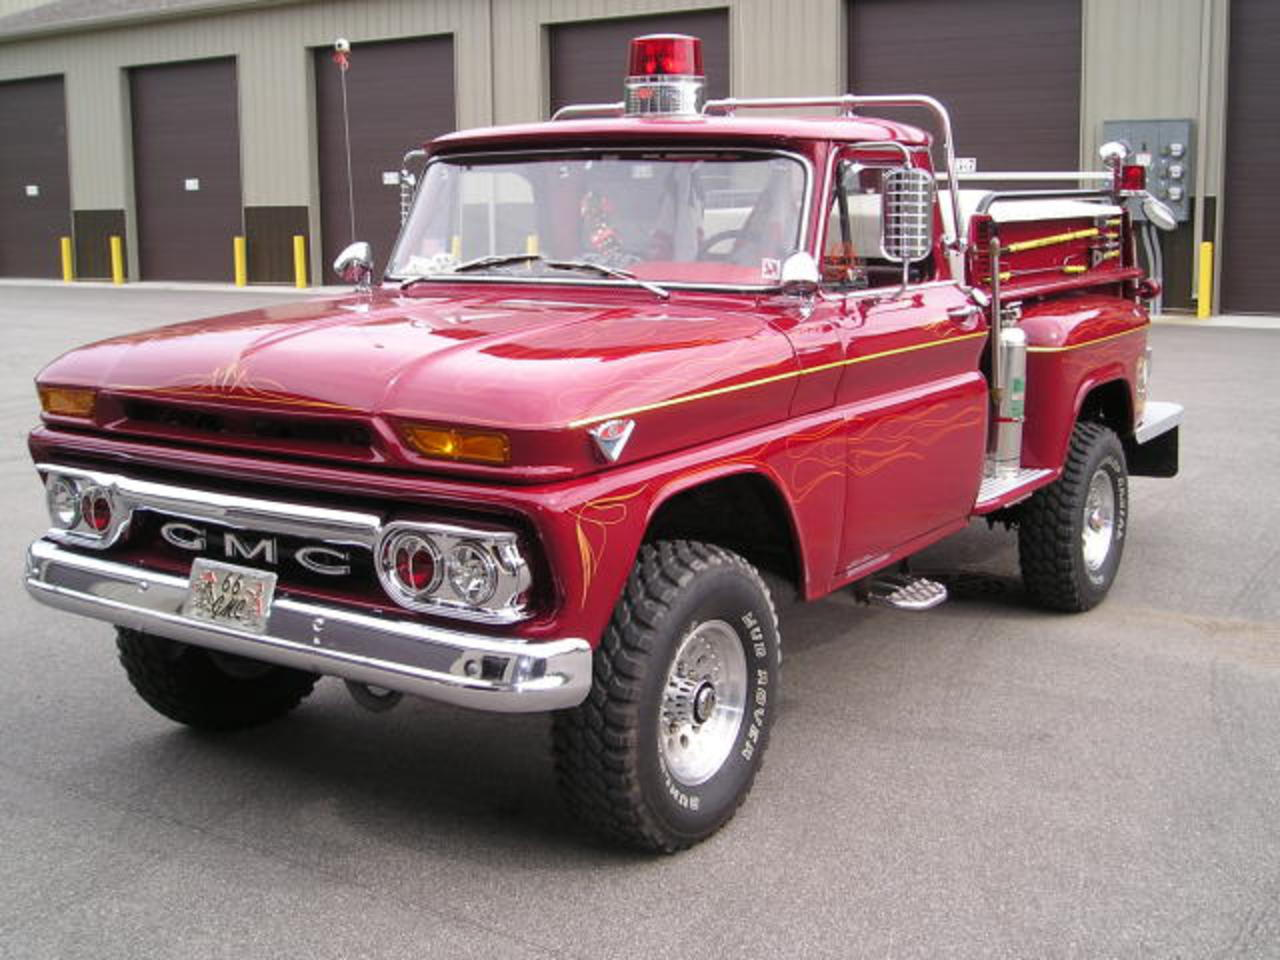 This GMC Fire Truck is super sweet! What do you guys think!